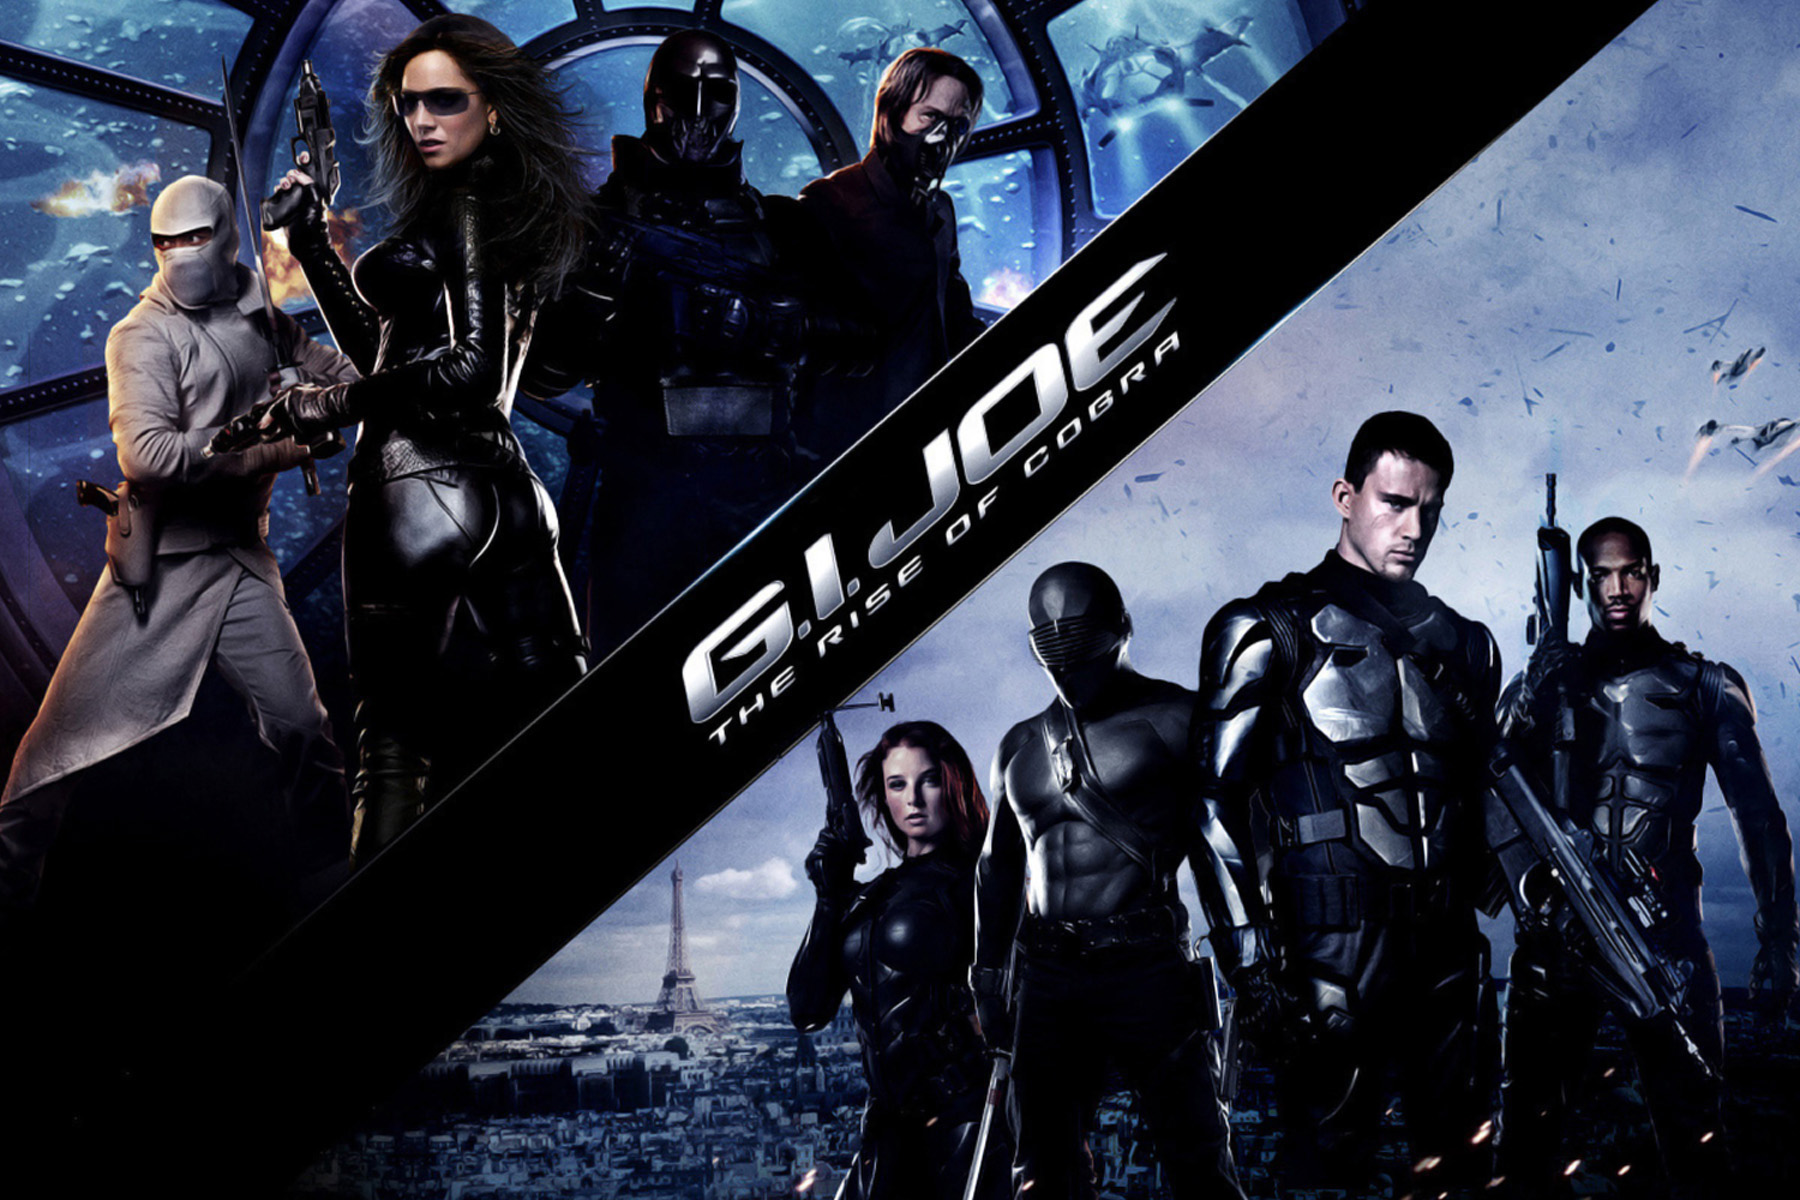 1920x1200 gi joe movie1